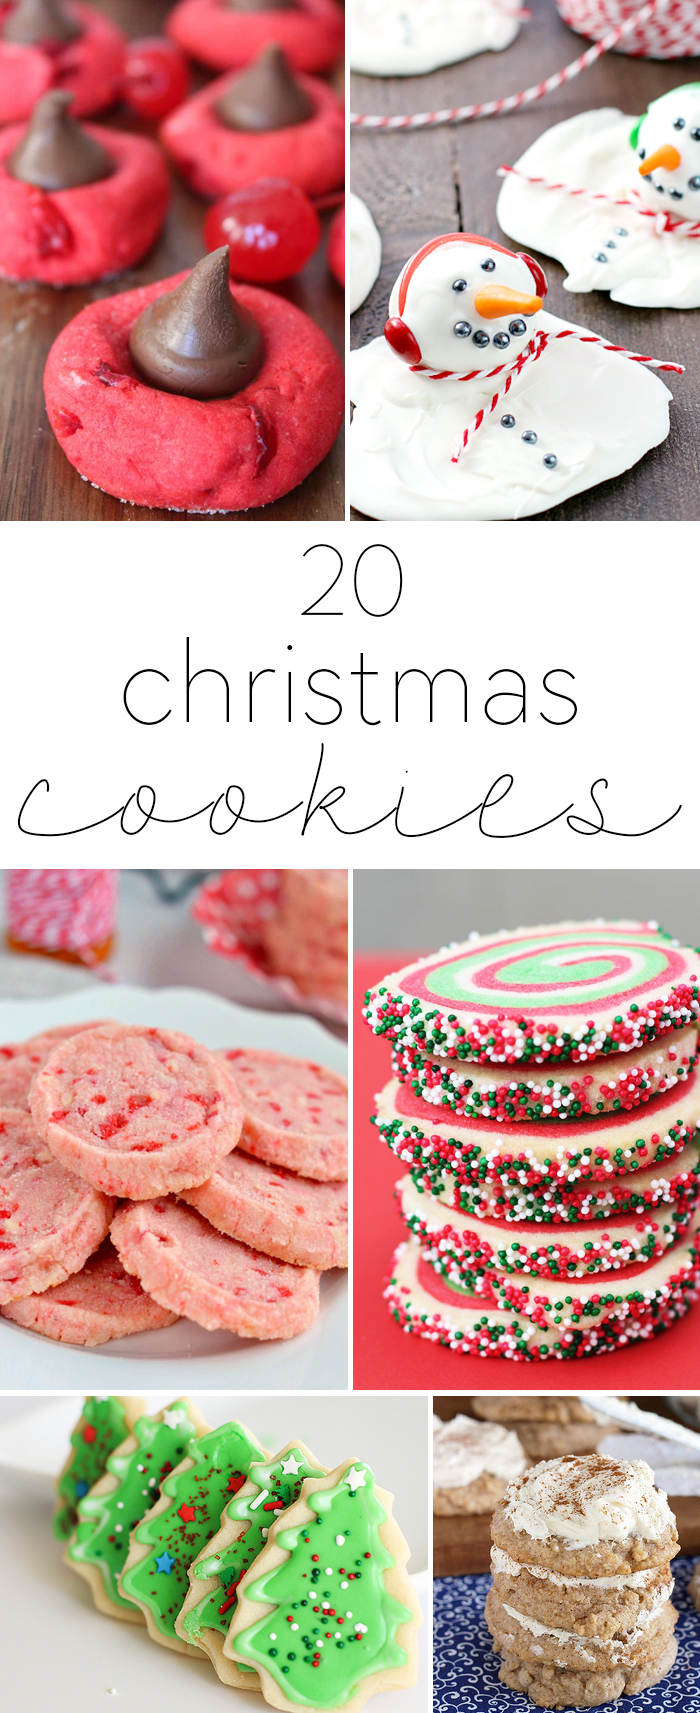 20 Christmas Cookies. A delicious roundup of 20 Christmas cookies that can be enjoyed with family and friends. From snickerdoodles to sugar cookies, there's something for everyone!